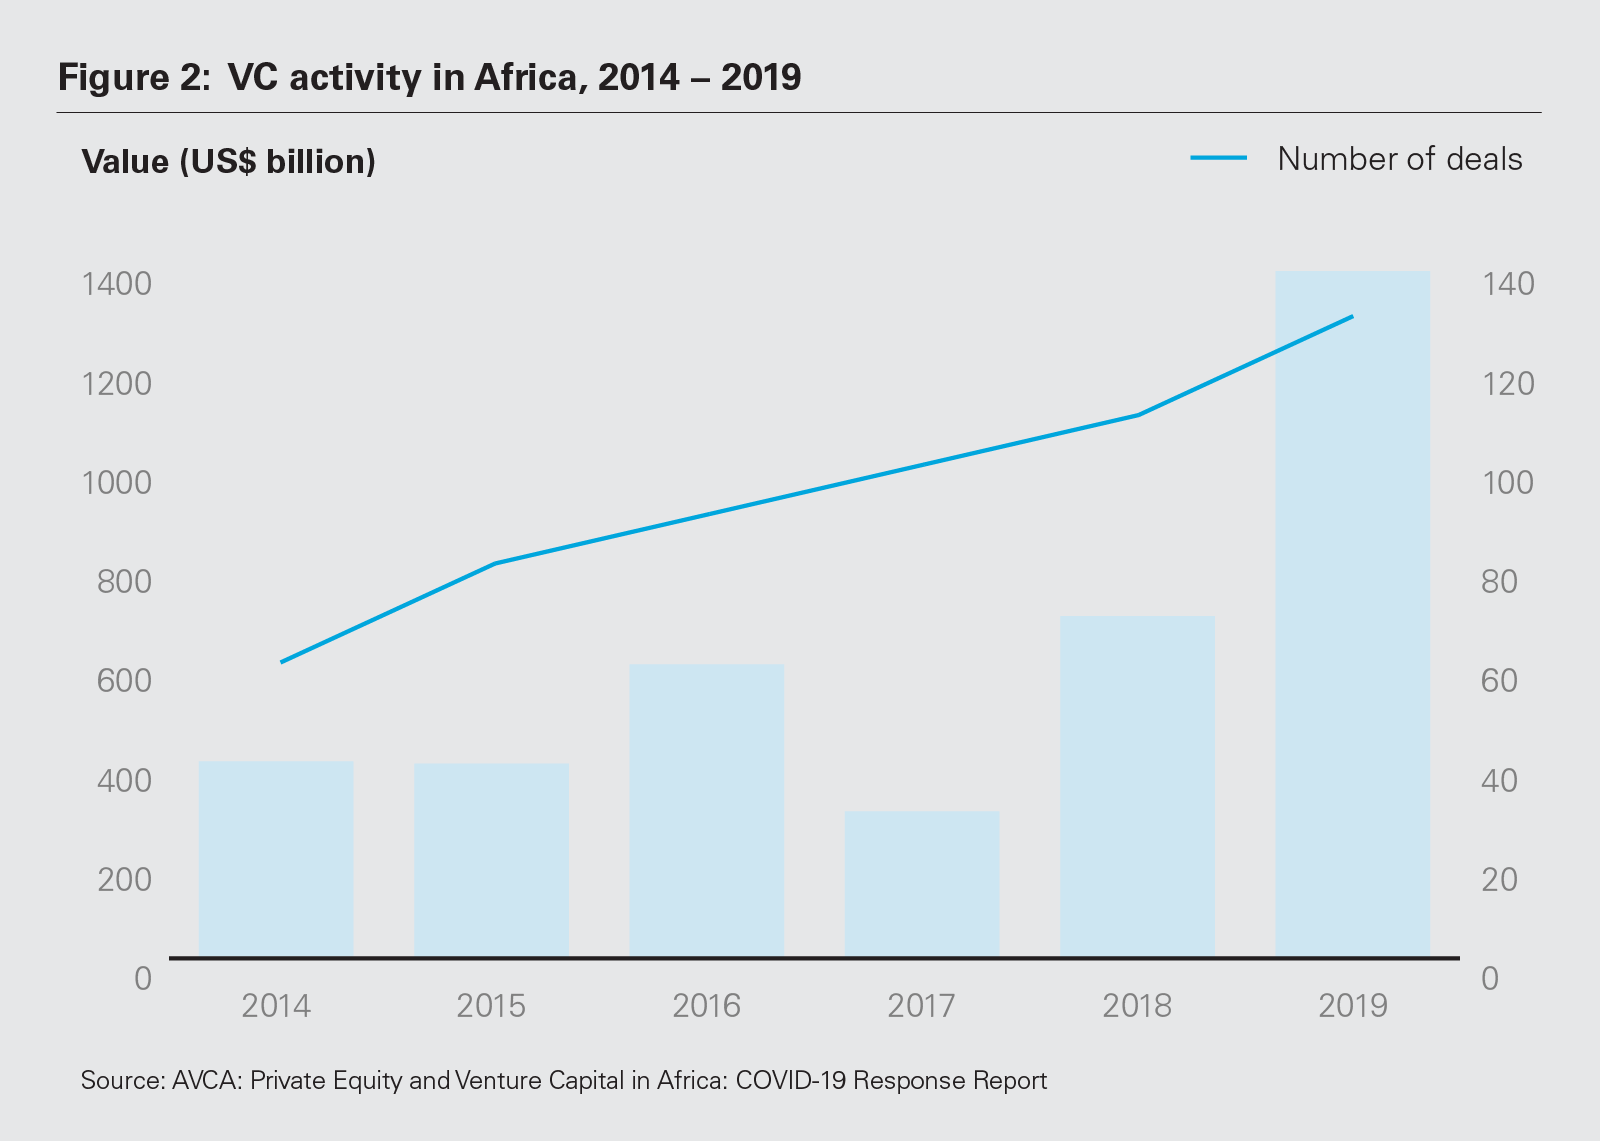 Figure 2: VC activity in Africa, 2014 – 2019